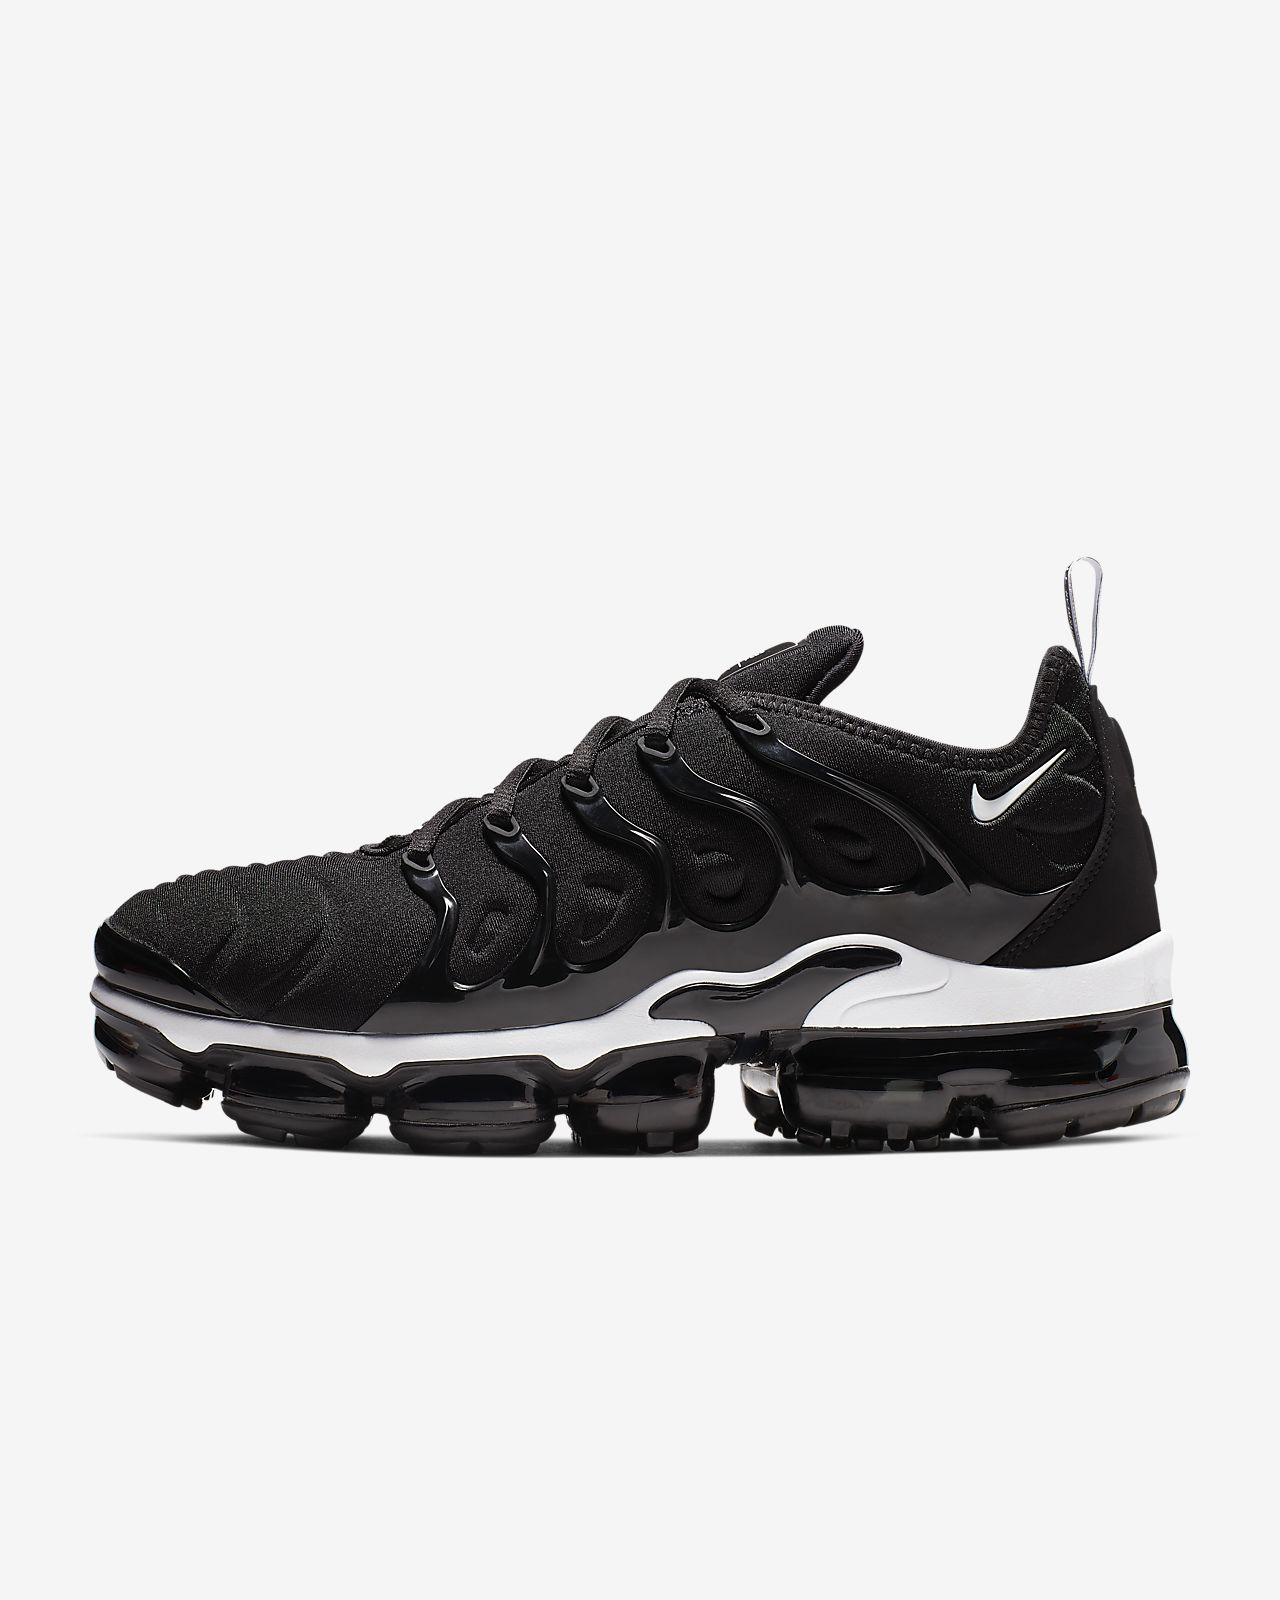 494fd771f3d Nike Air VaporMax Plus Men s Shoe. Nike.com CA